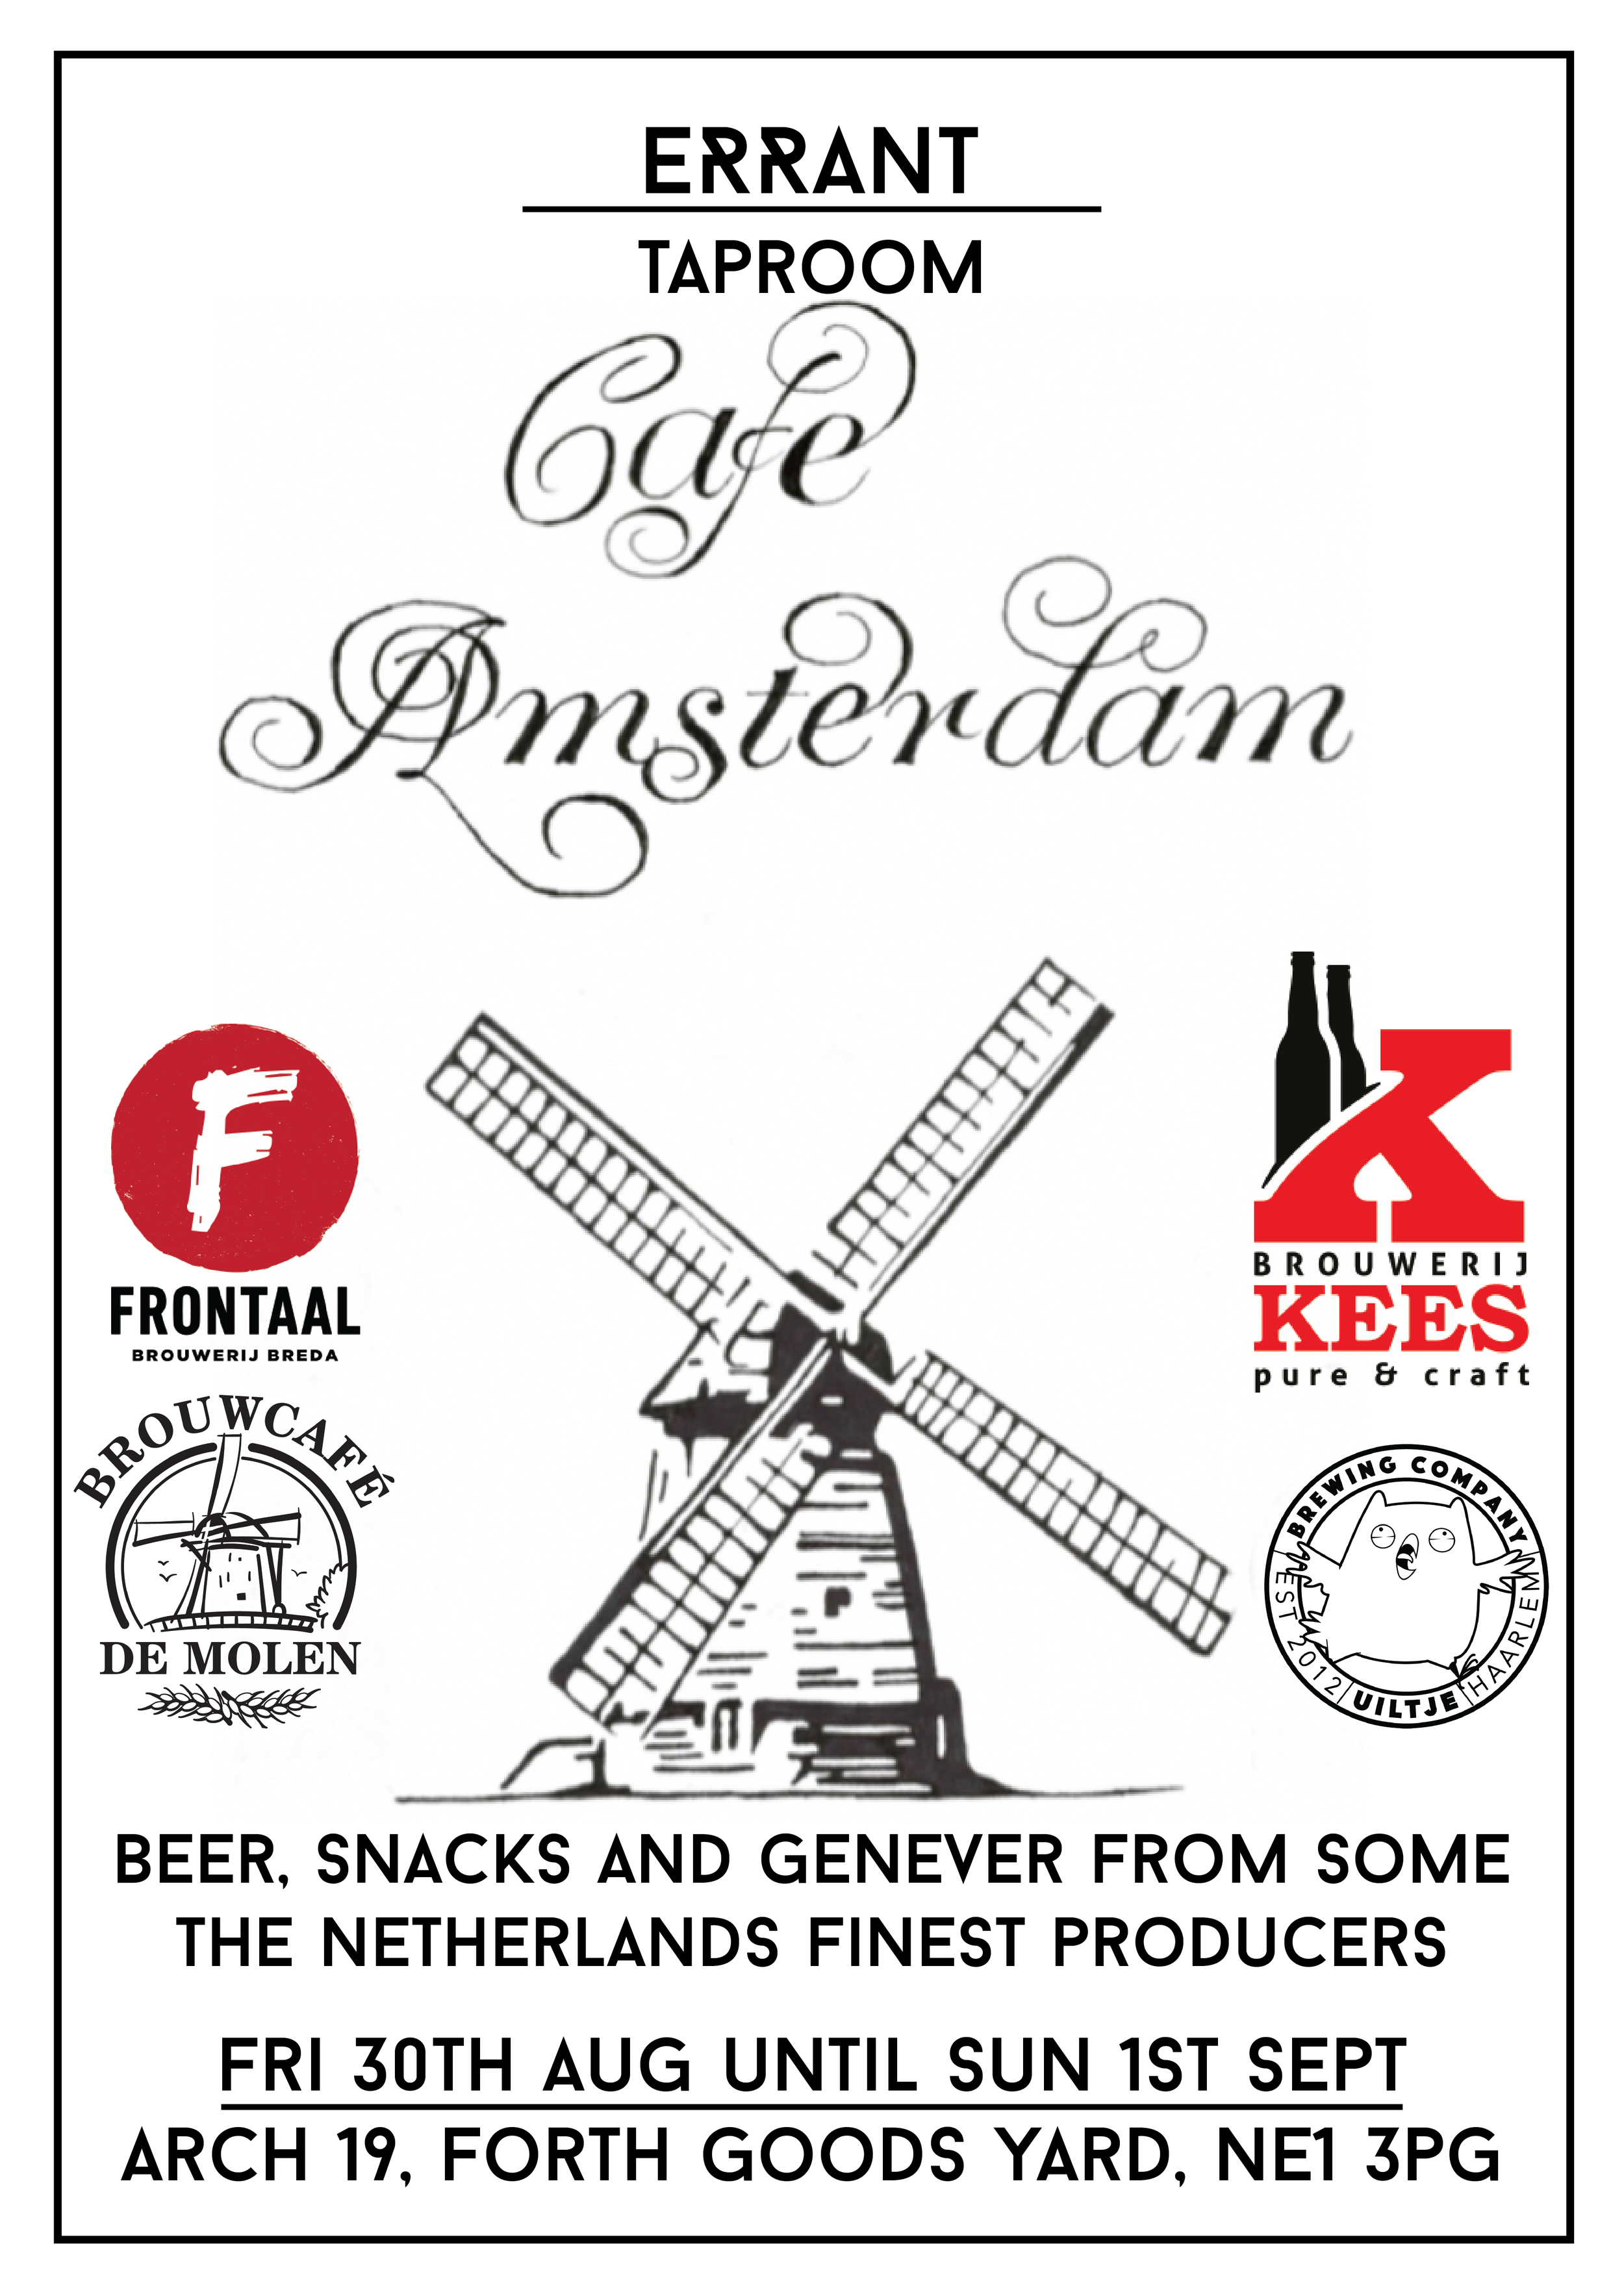 Taproom Aug 2019 (Cafe Amsterdam)-01.png